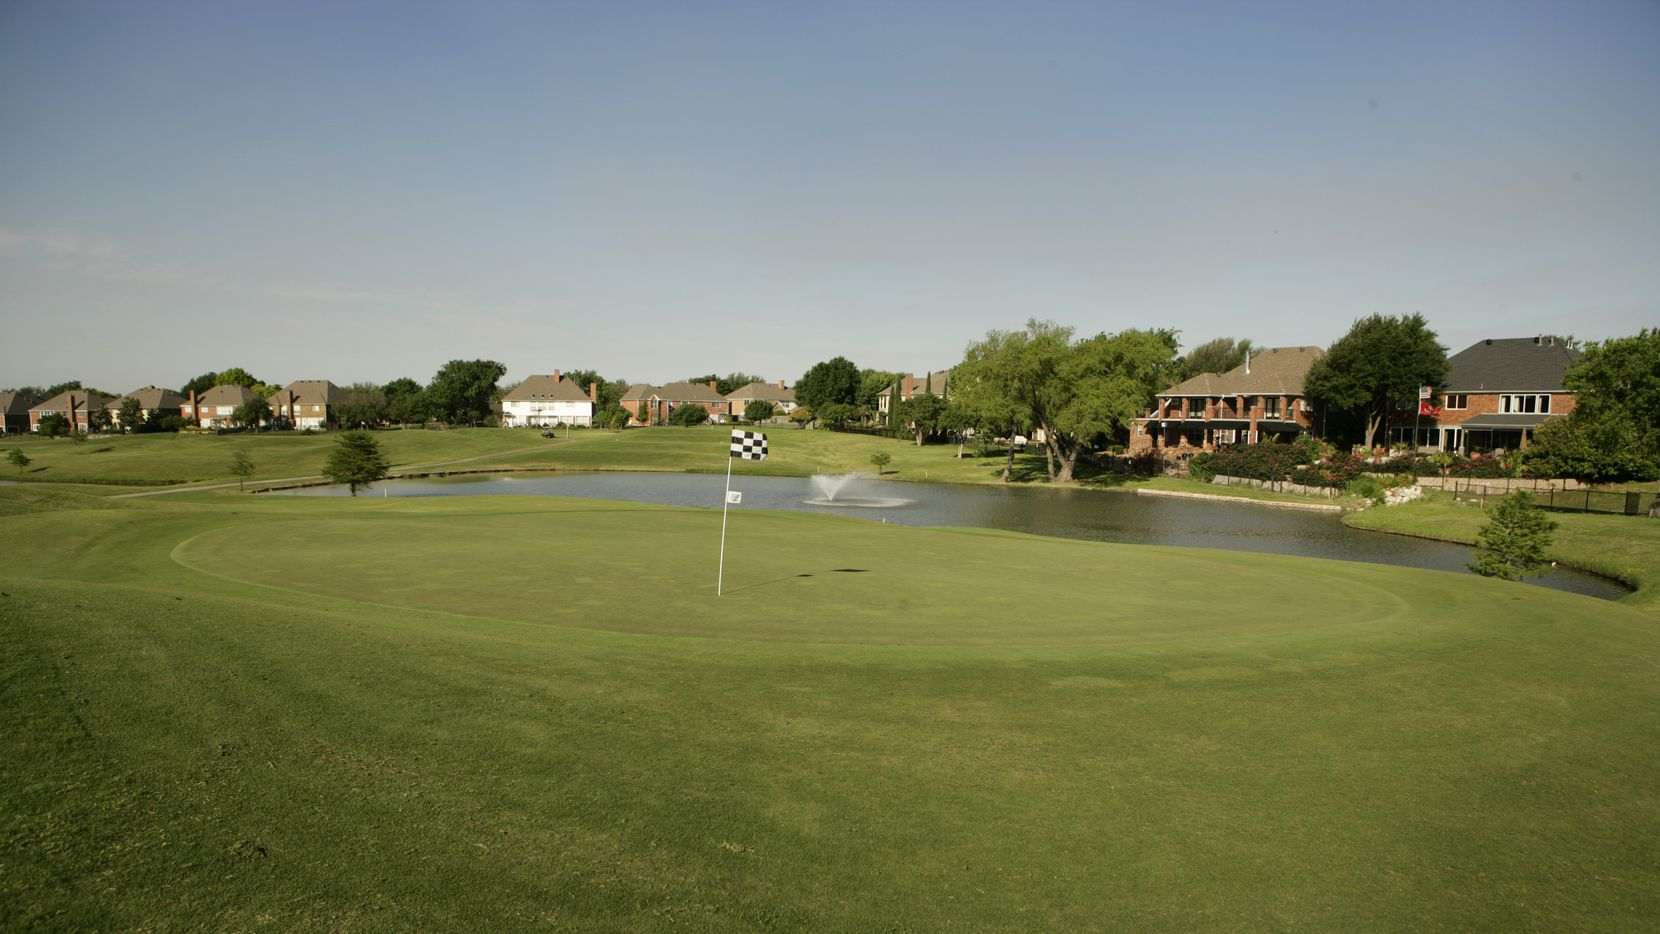 The Number 6 hole, par 3, on Course 1 at Sherrill Park Golf Course, photographed on April 29, 2011.